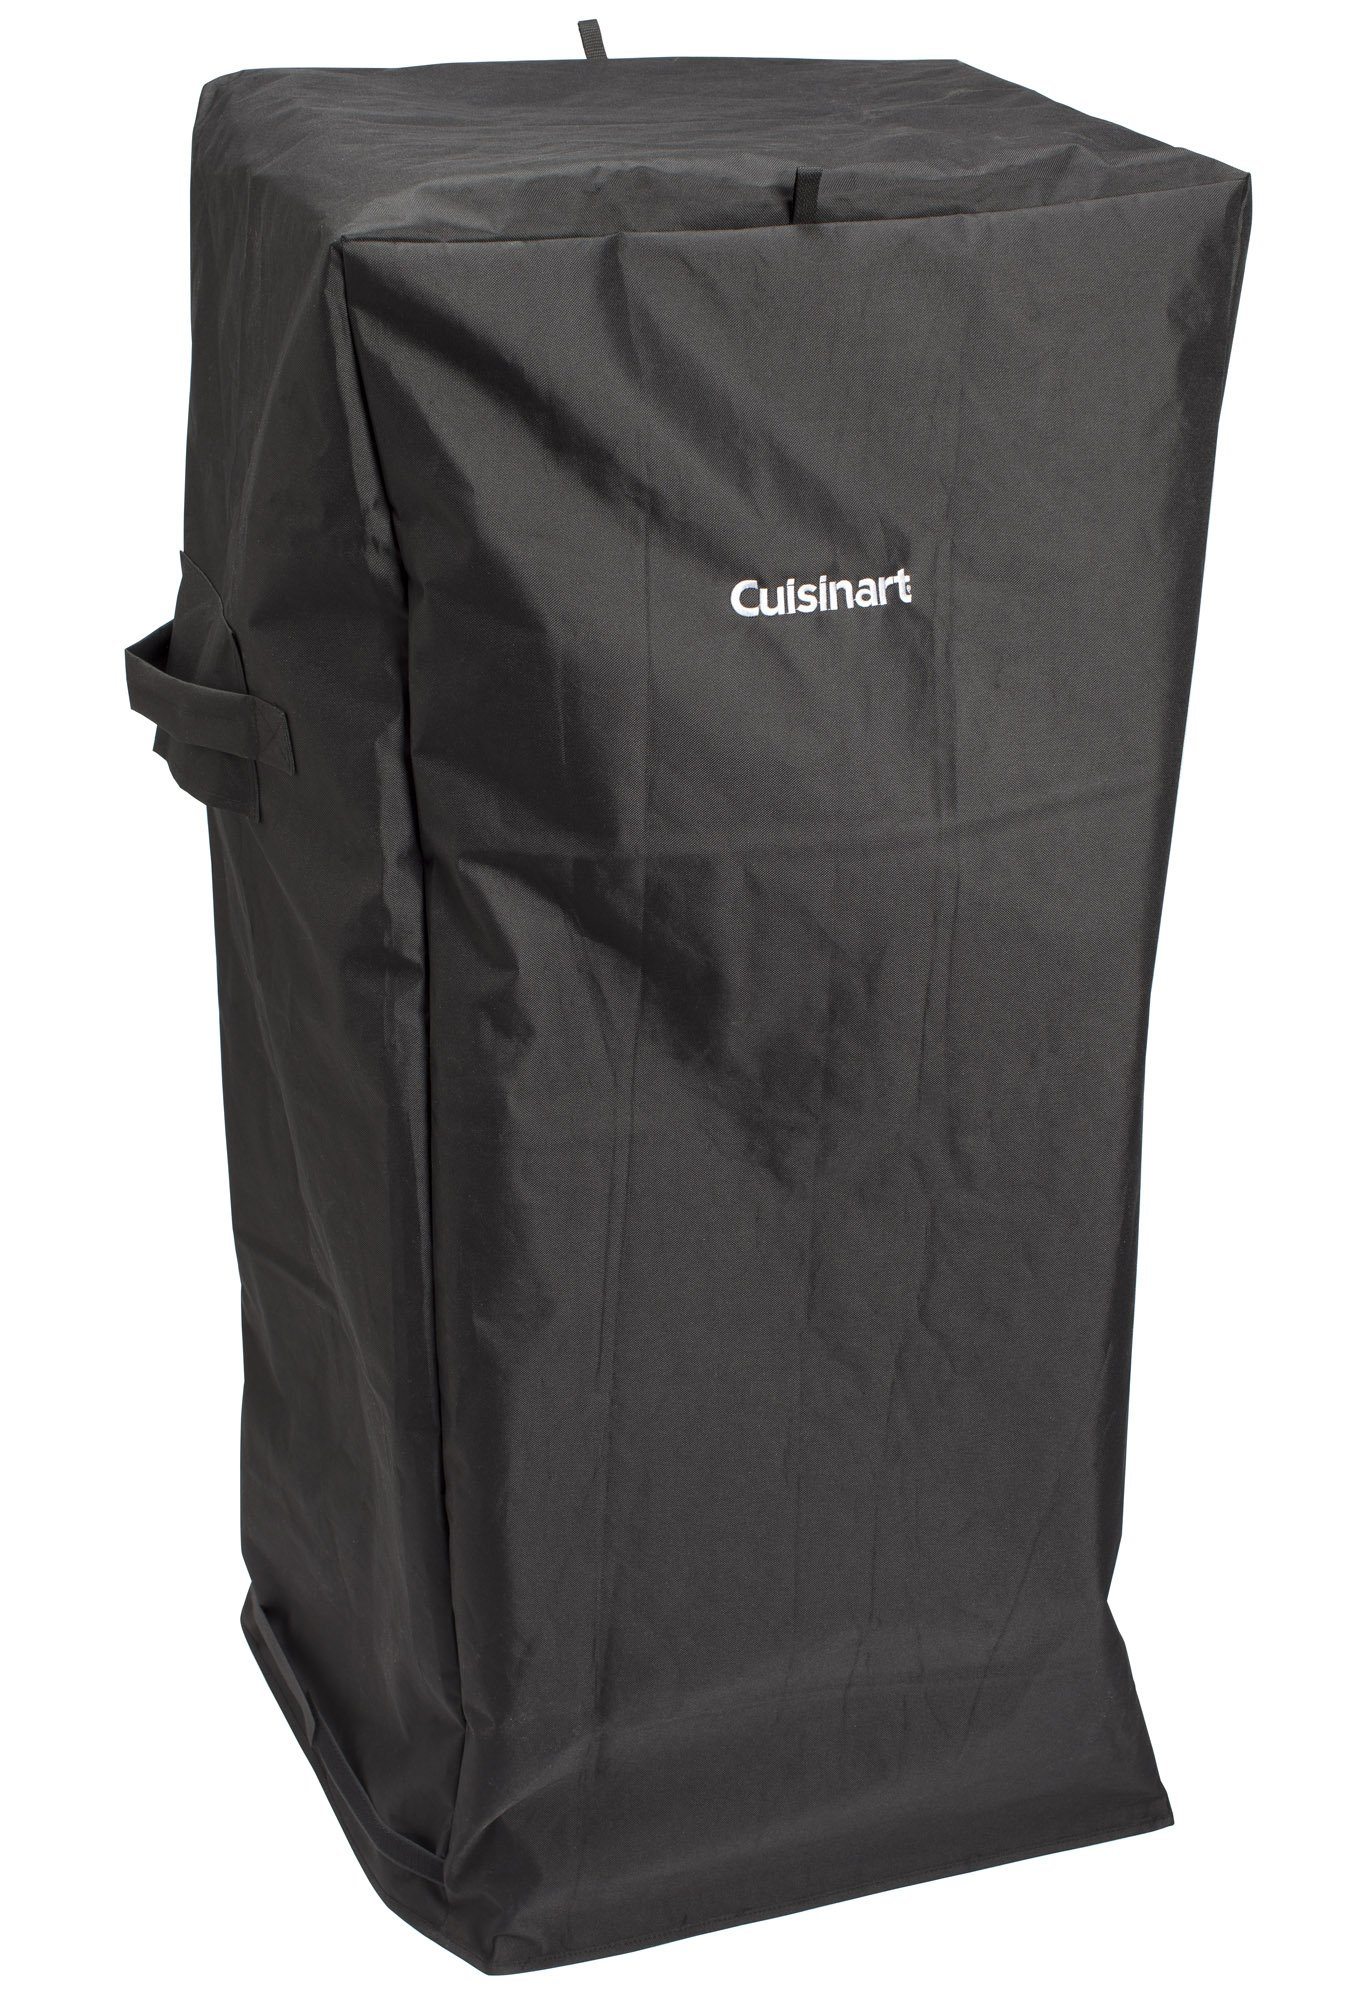 Cuisinart CGC-10244 Vertical Smoker Cover, Fits up to 36'' by Cuisinart